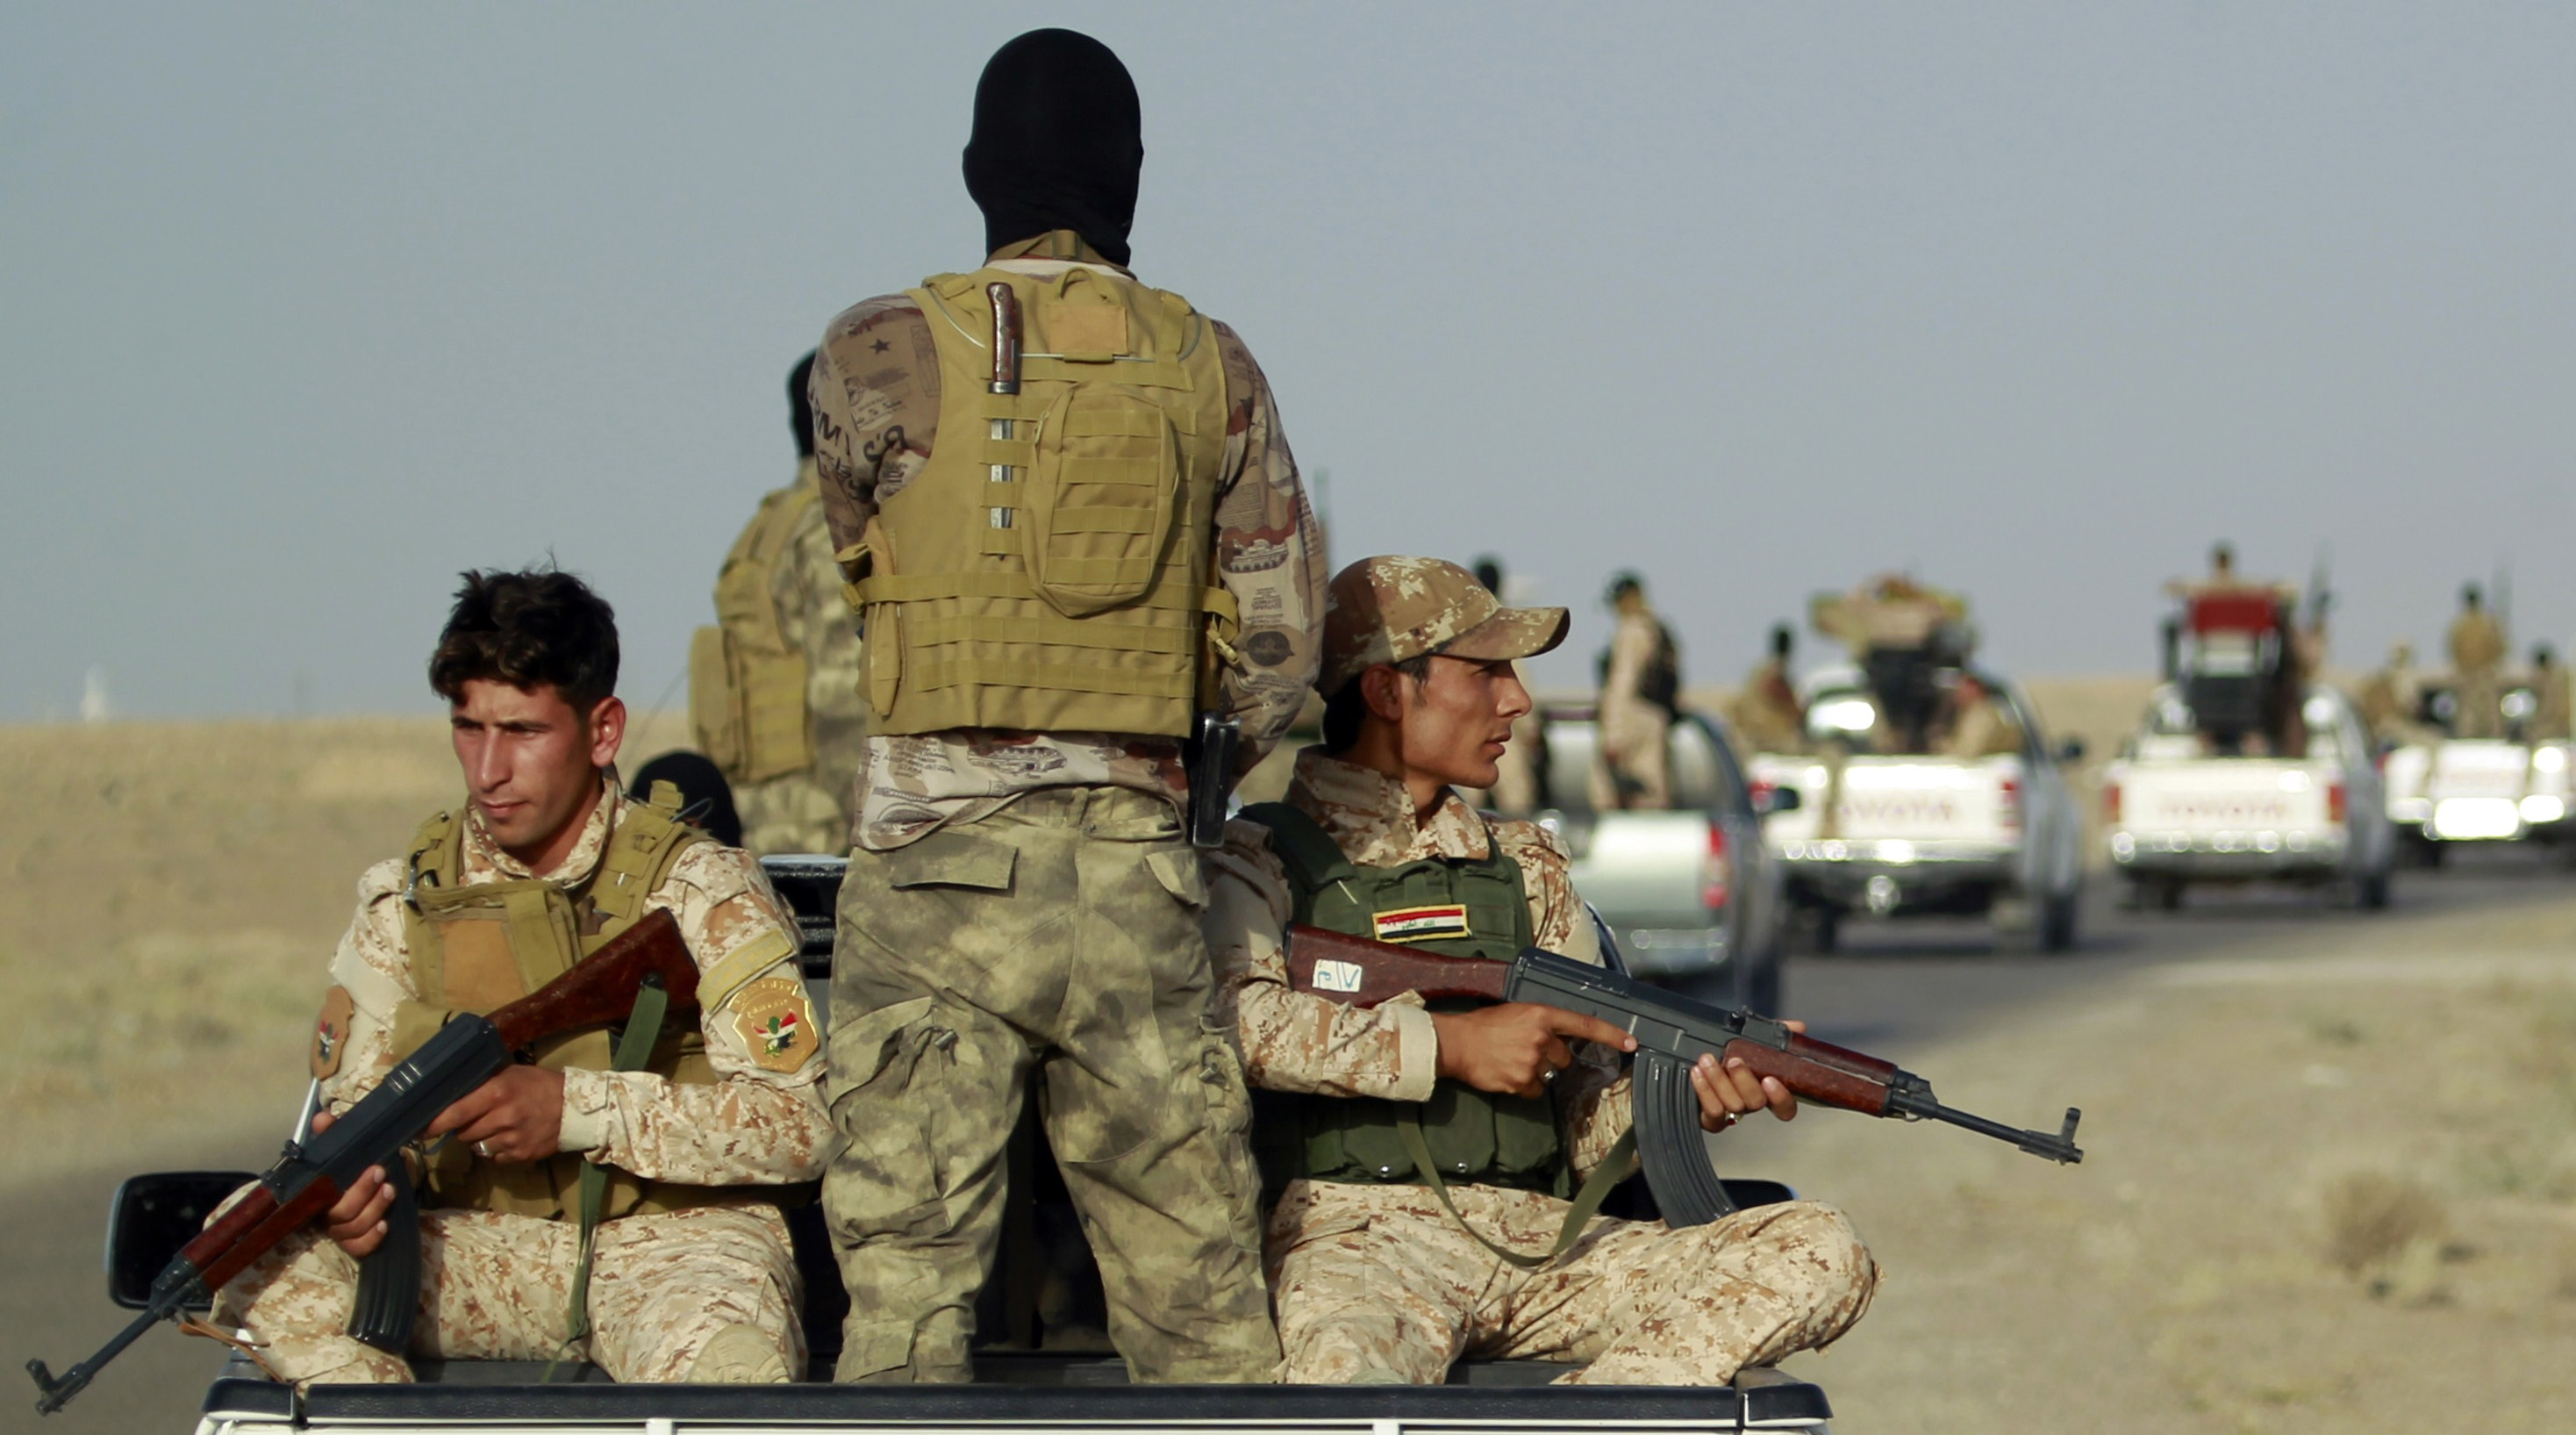 The conflict between Iraqi Sunnis and Shias sustains ISIS